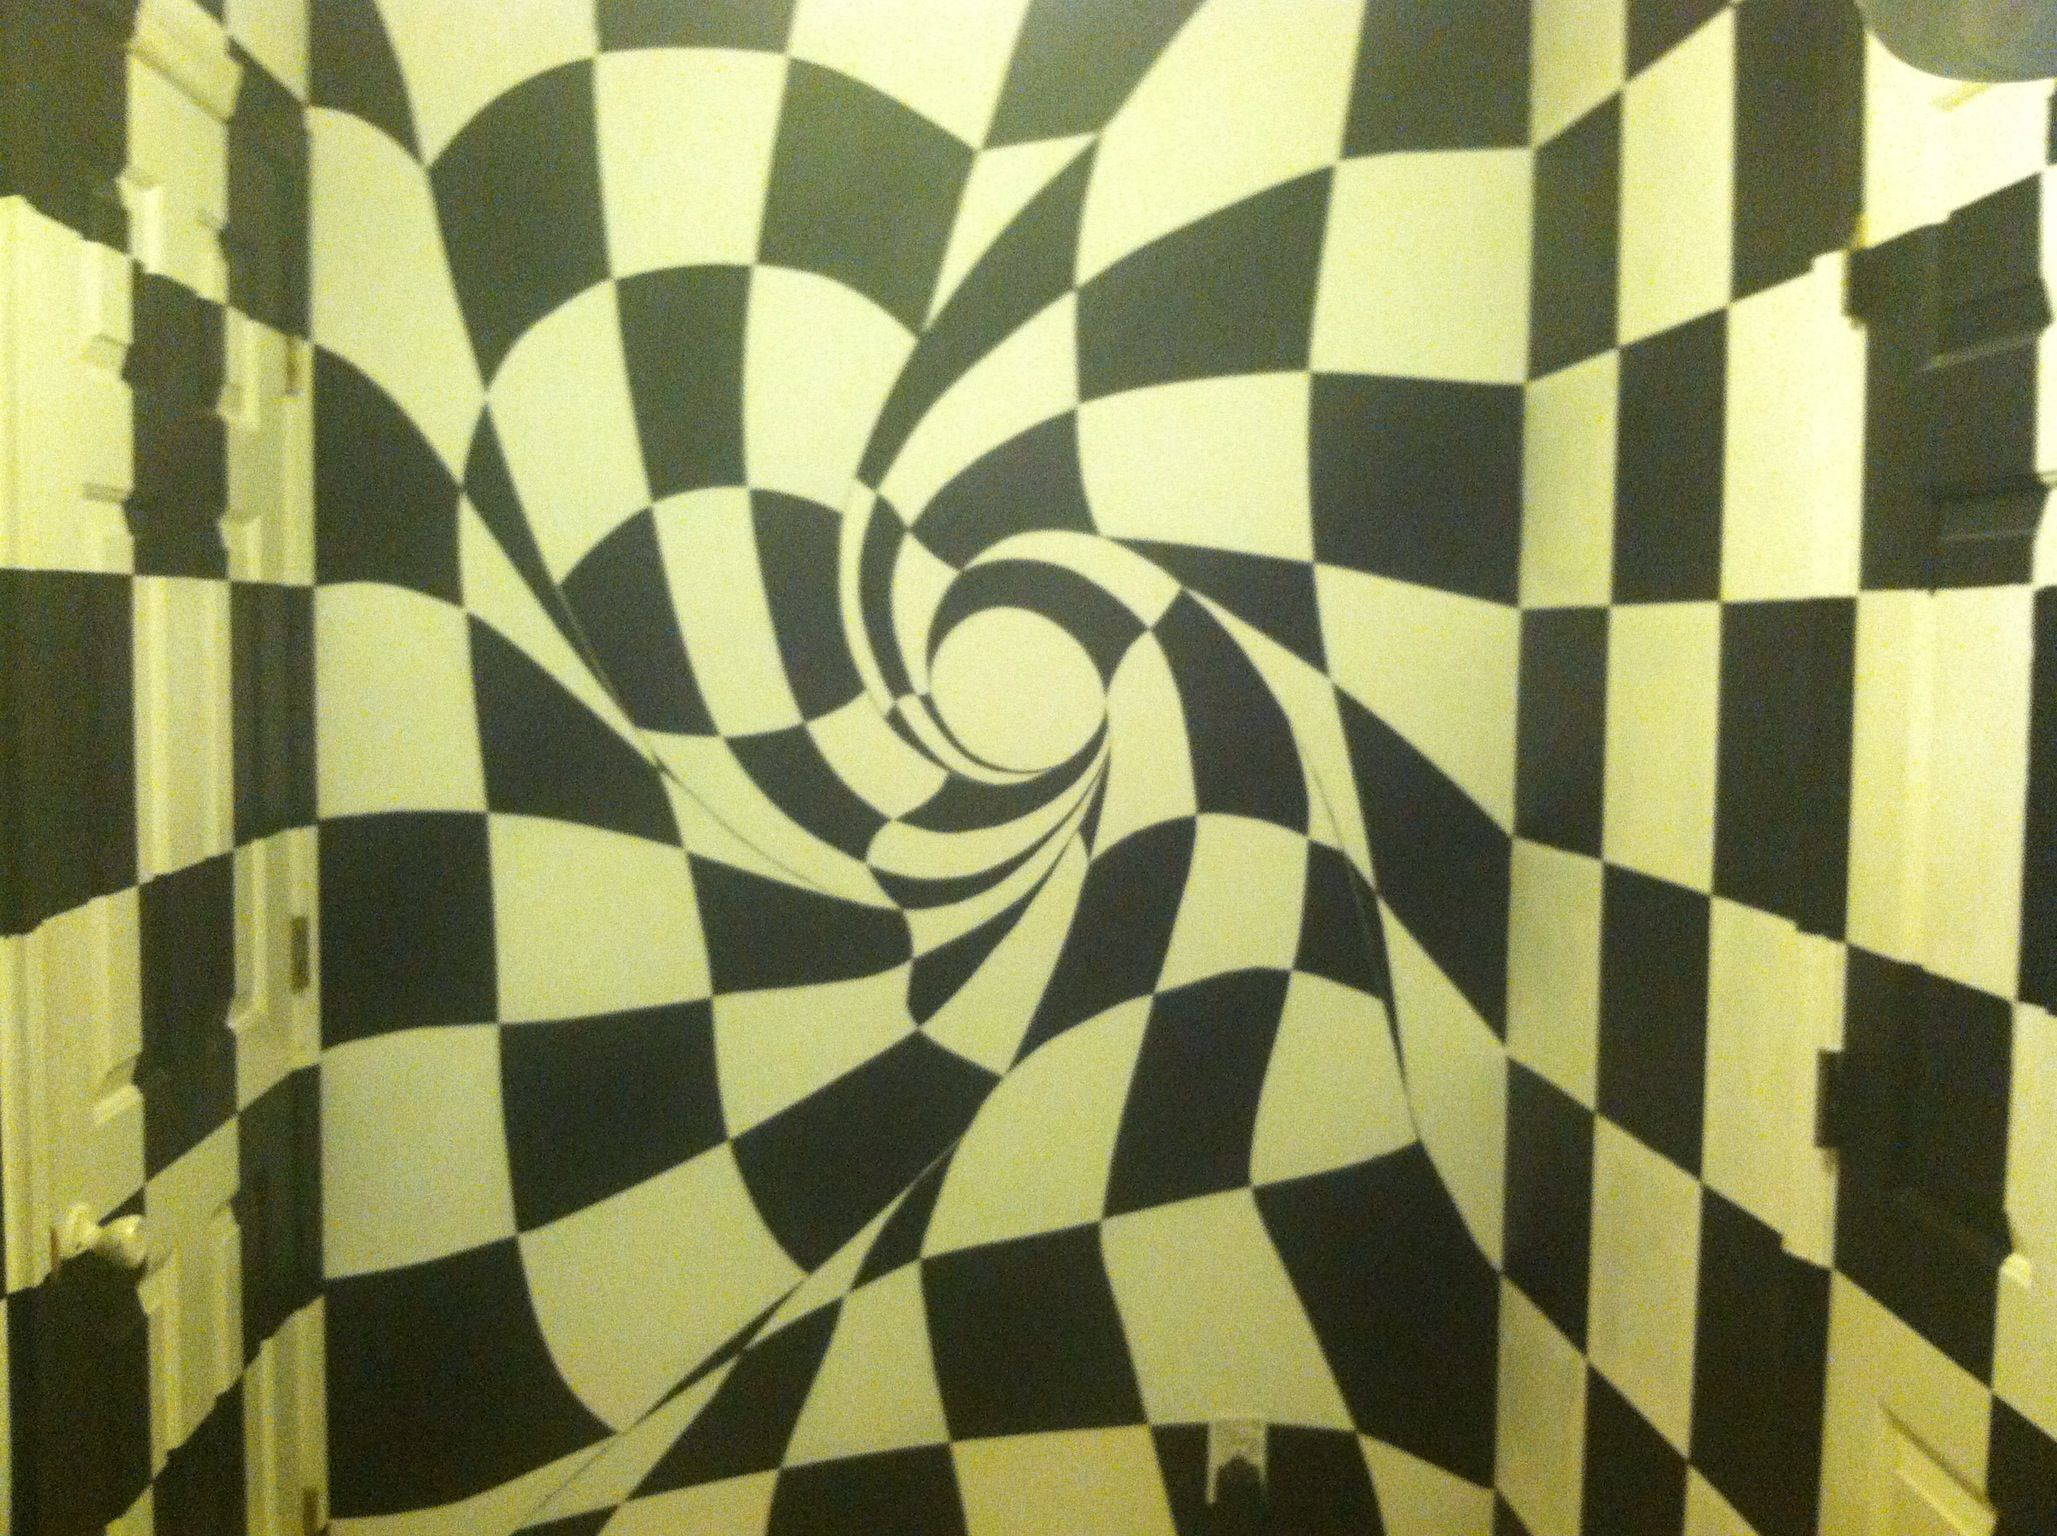 360 Degree Black And White Checkered Laundry Room With A Twist Alice In Wonderland Feel Red Washer Wall Painting Alice In Wonderland Red Washer And Dryer